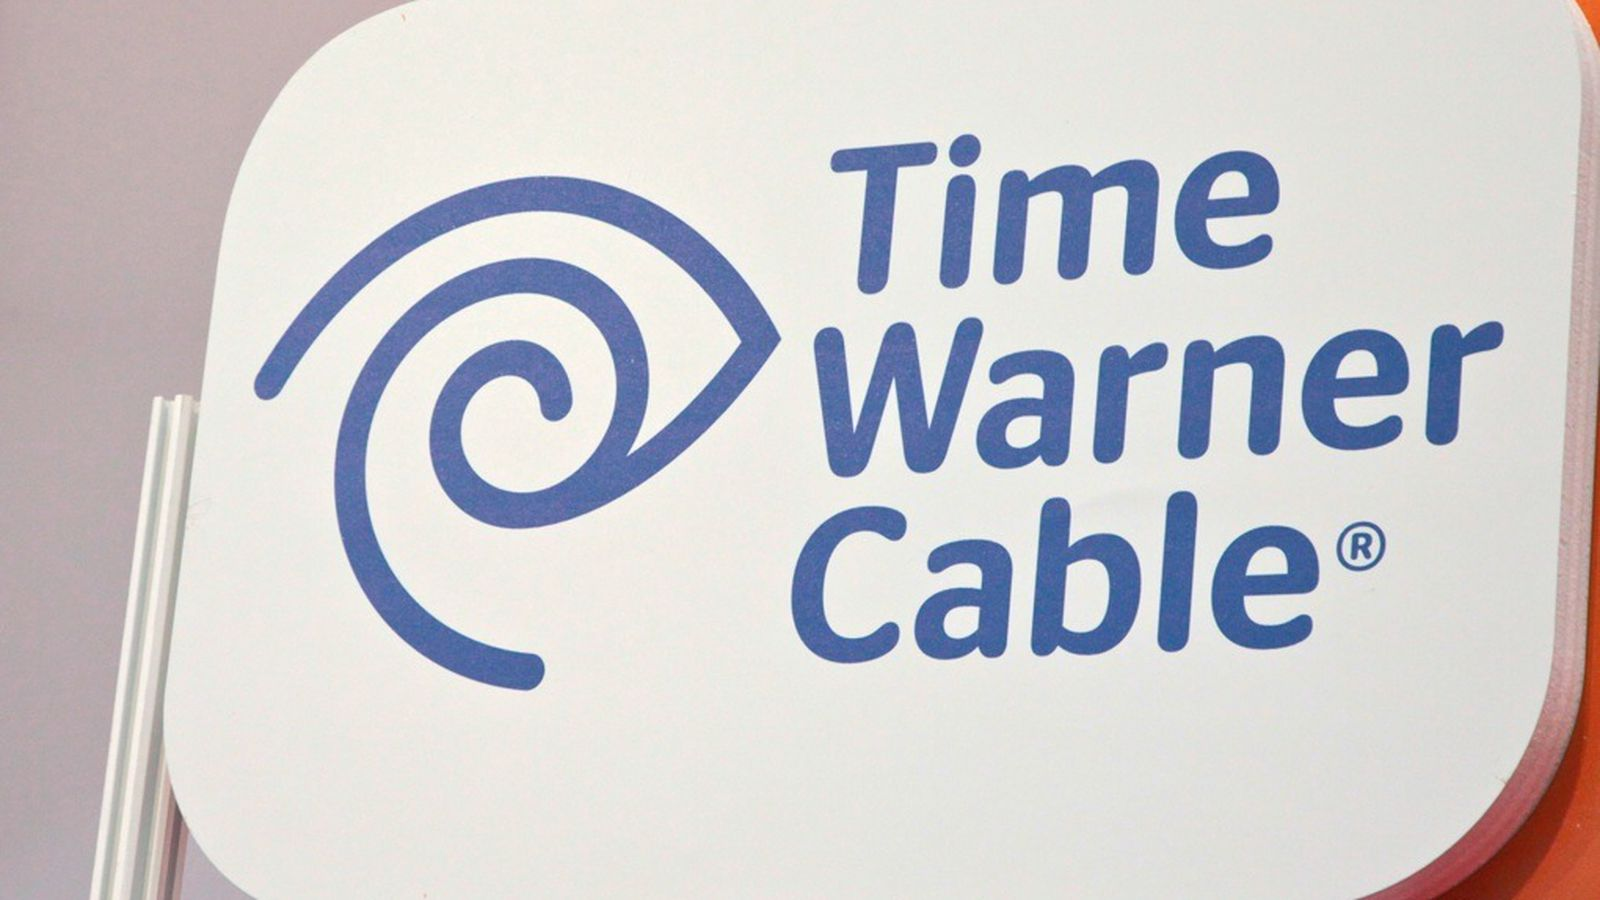 Porn on time warner cable